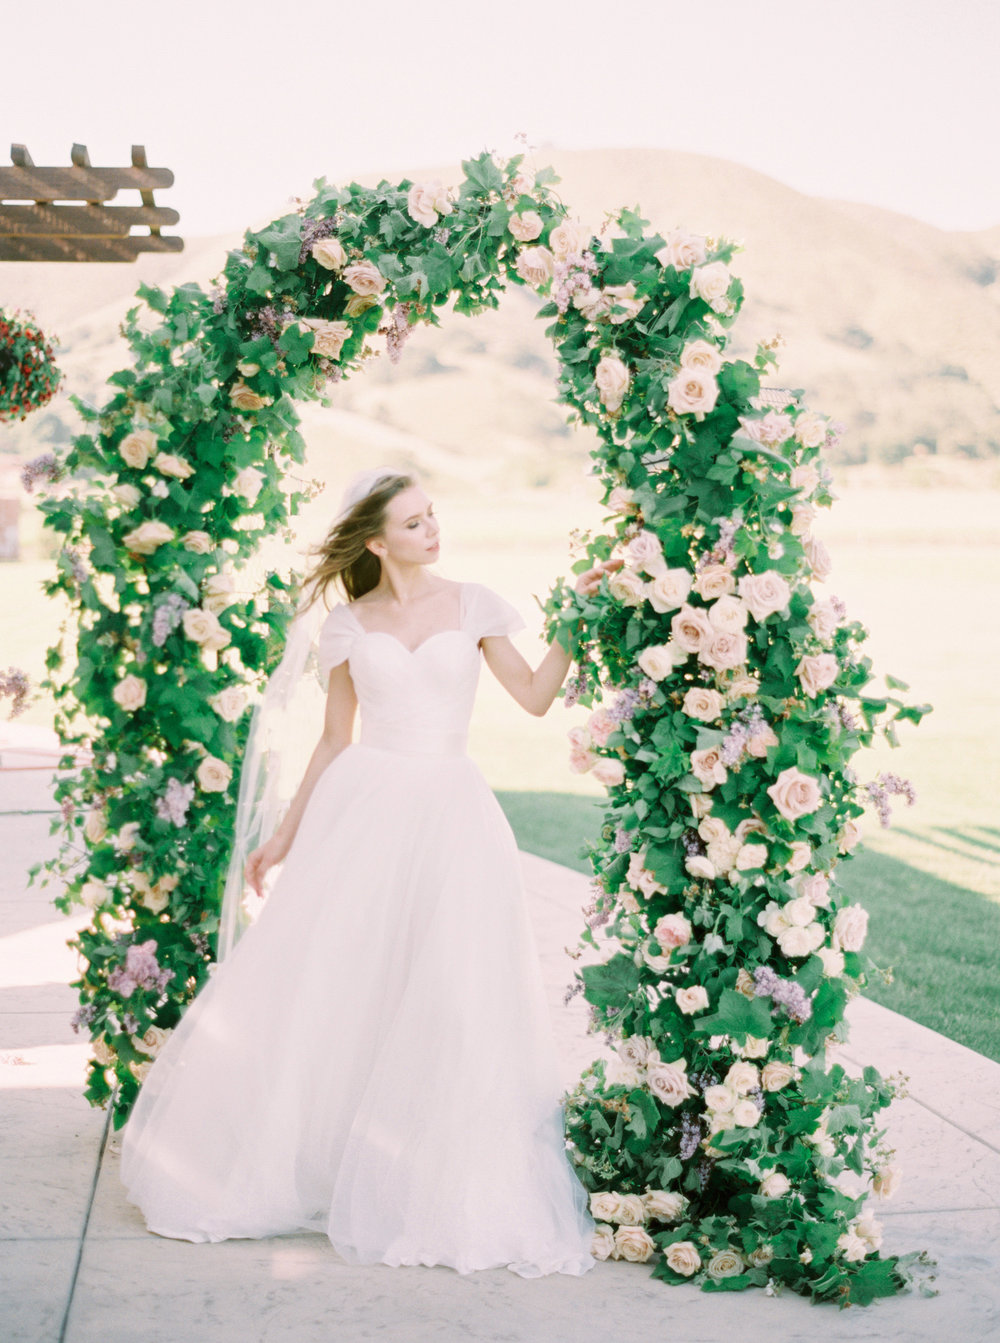 This-Love-of-Yours-Kirigin-Cellars-Flower-Arch-Styled-Shoot-110.jpg